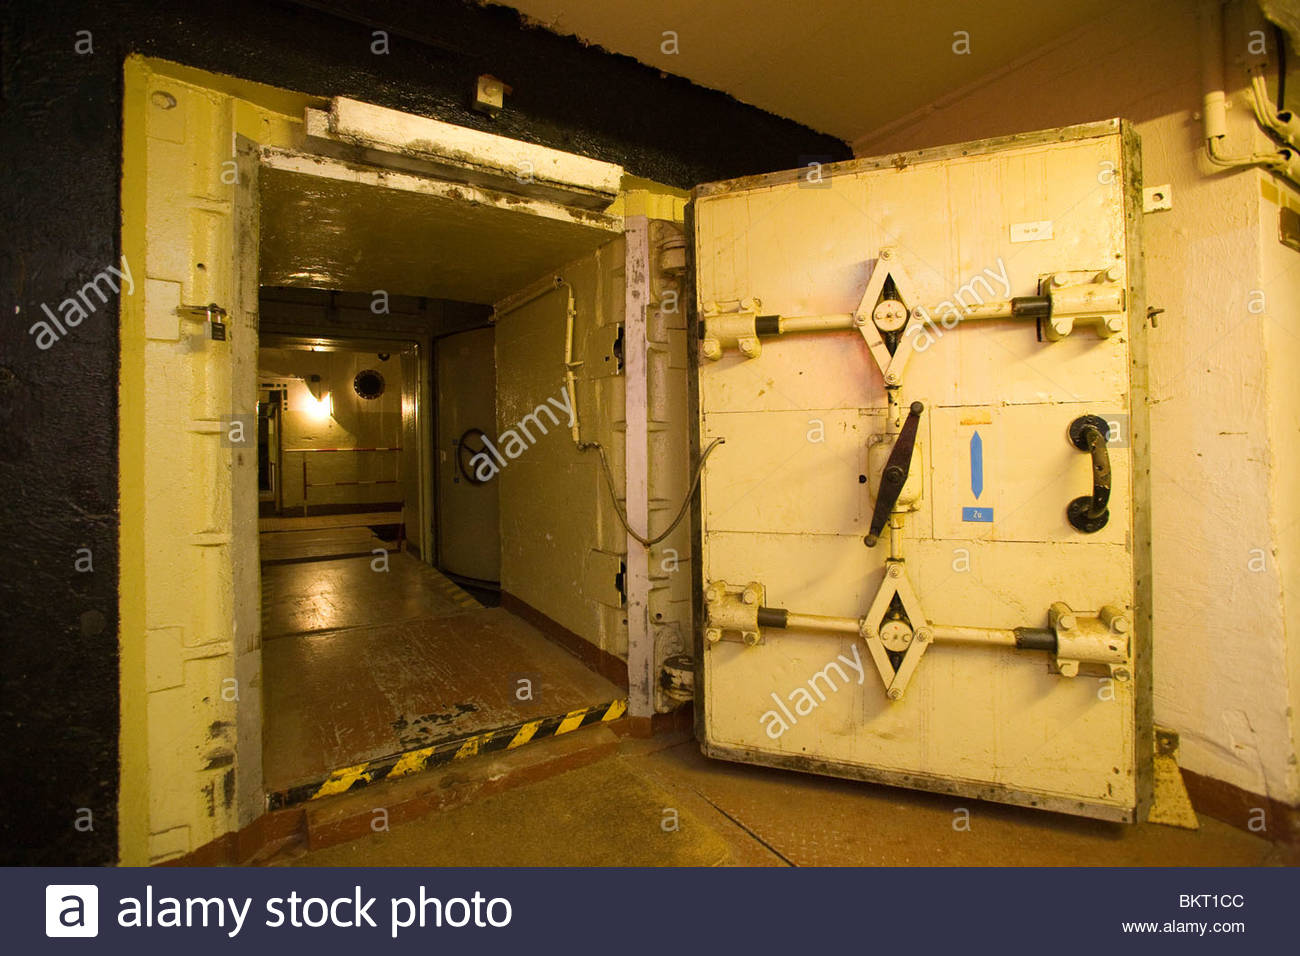 reinforced door of the bunker anti-atomic harnekop,Prötzel,Brandenburg,Germany - Stock Image